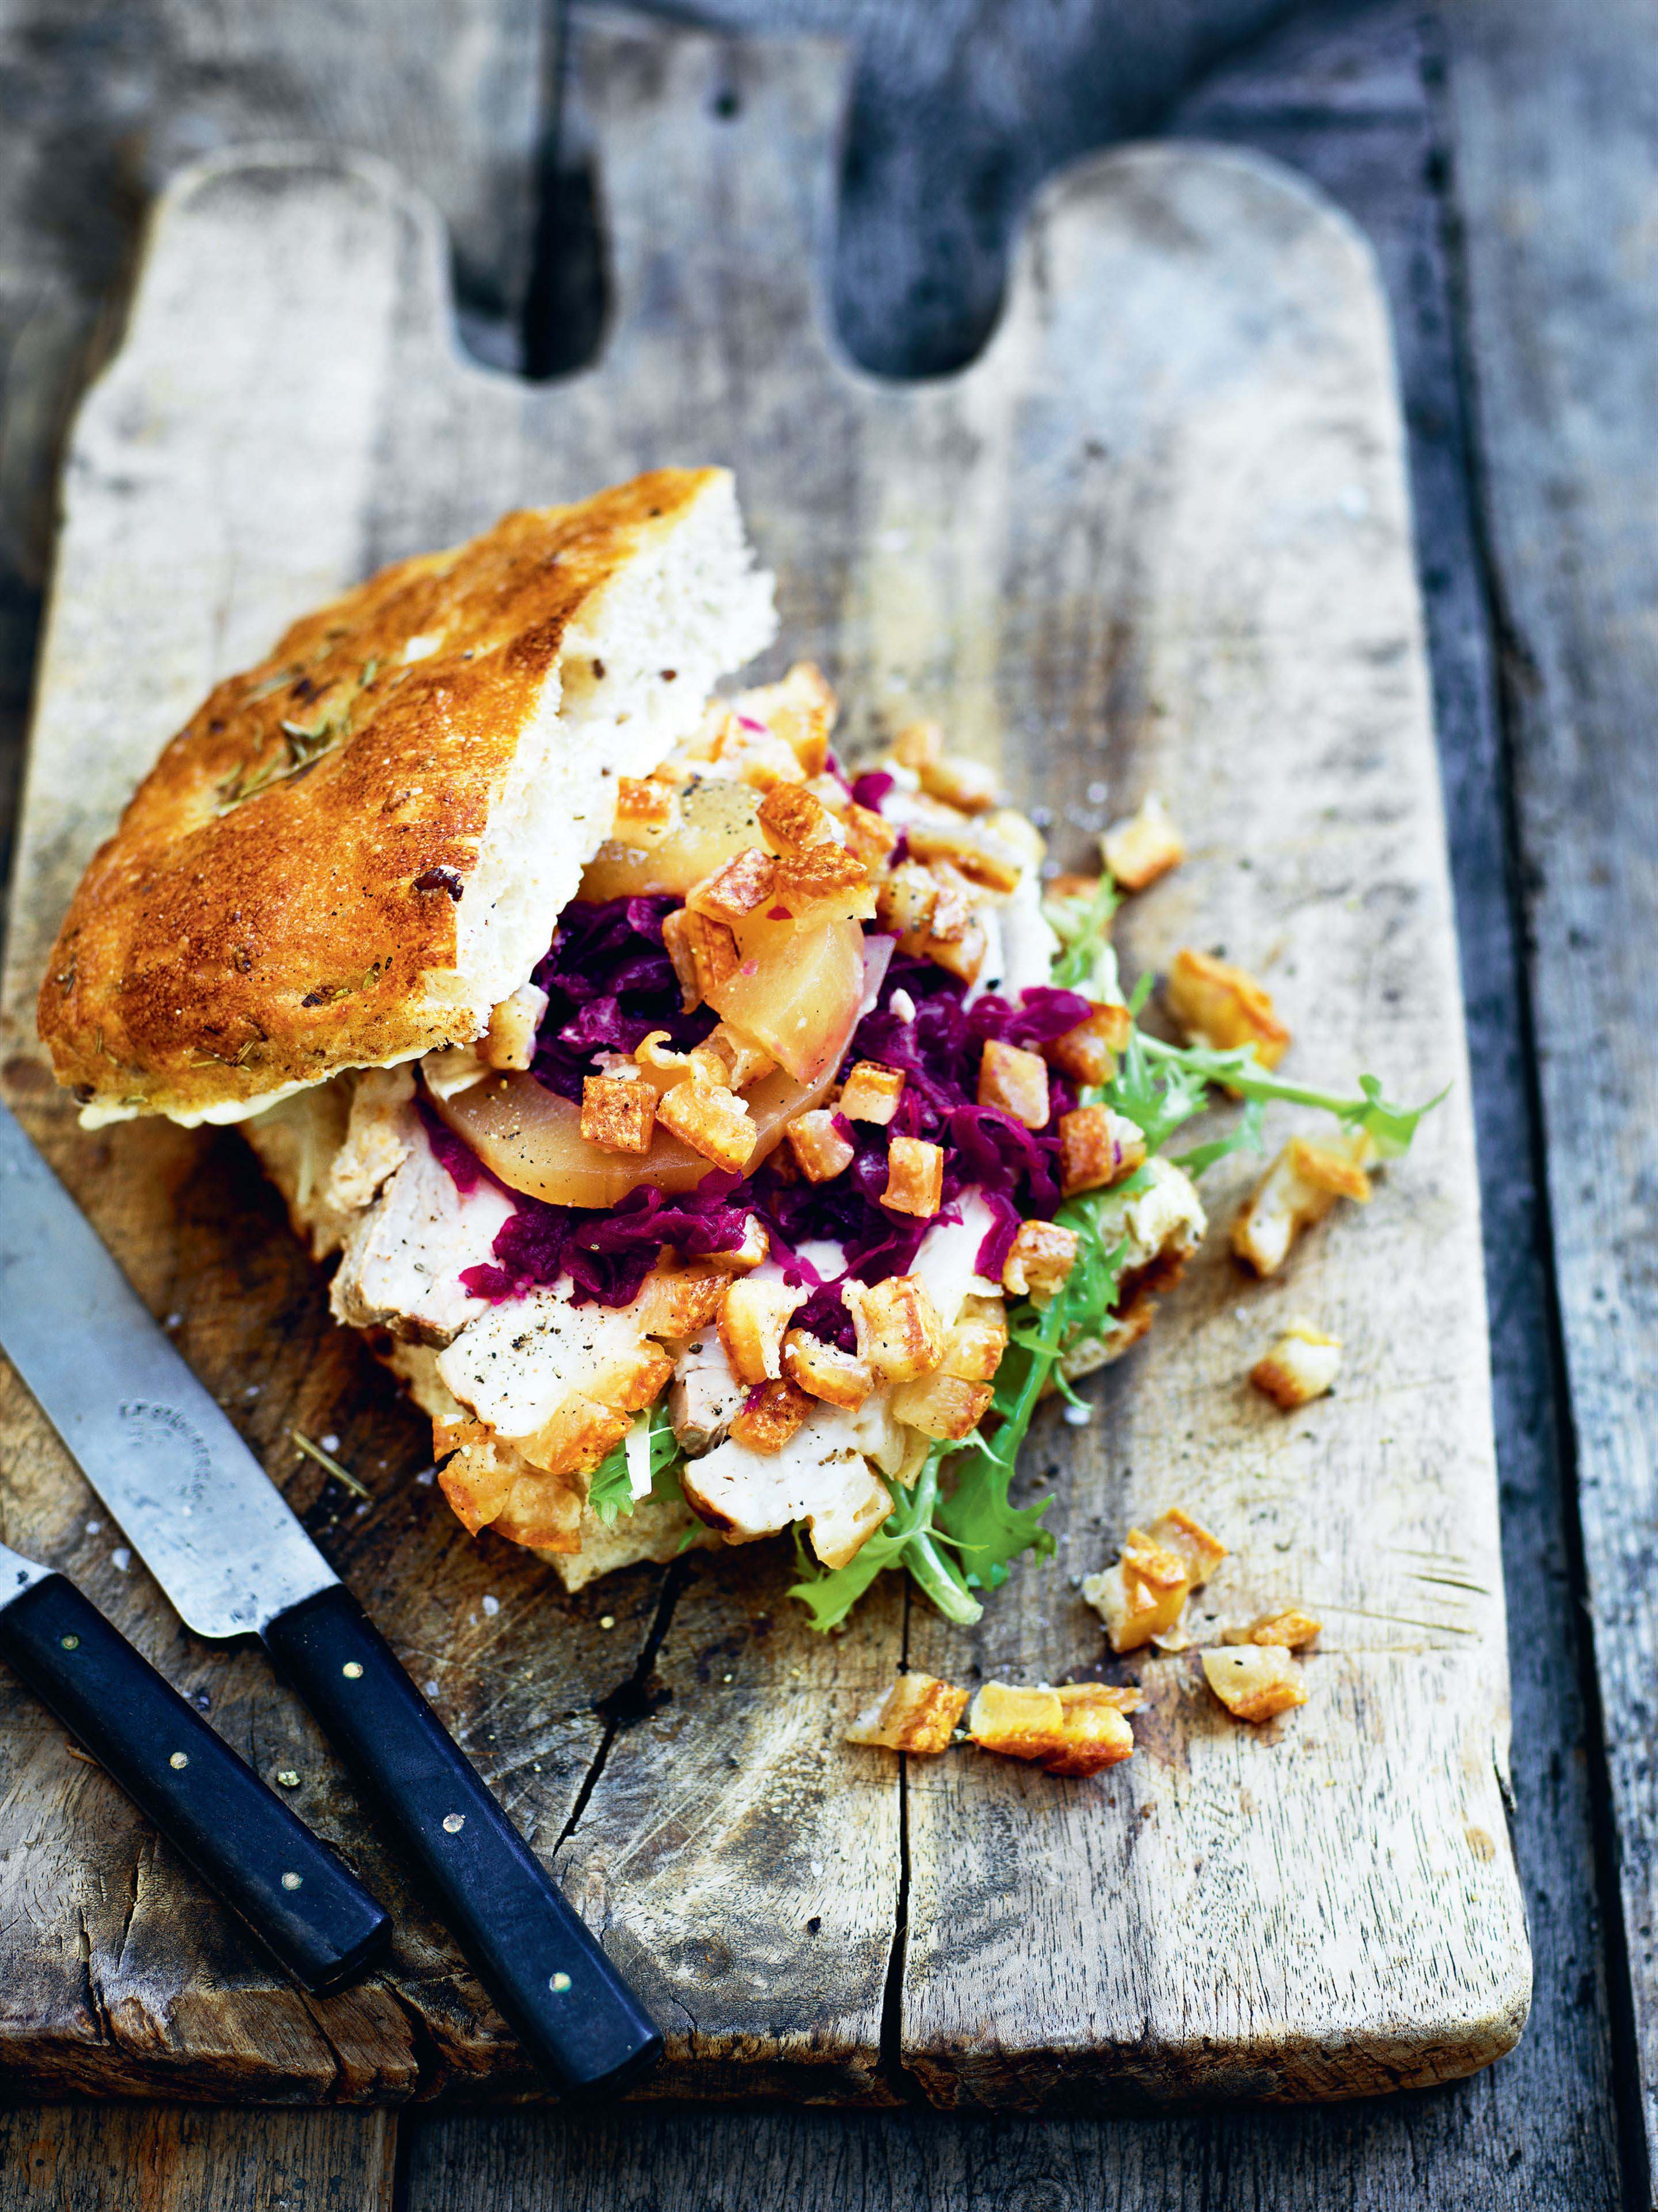 Pork sandwich with red cabbage and horseradish